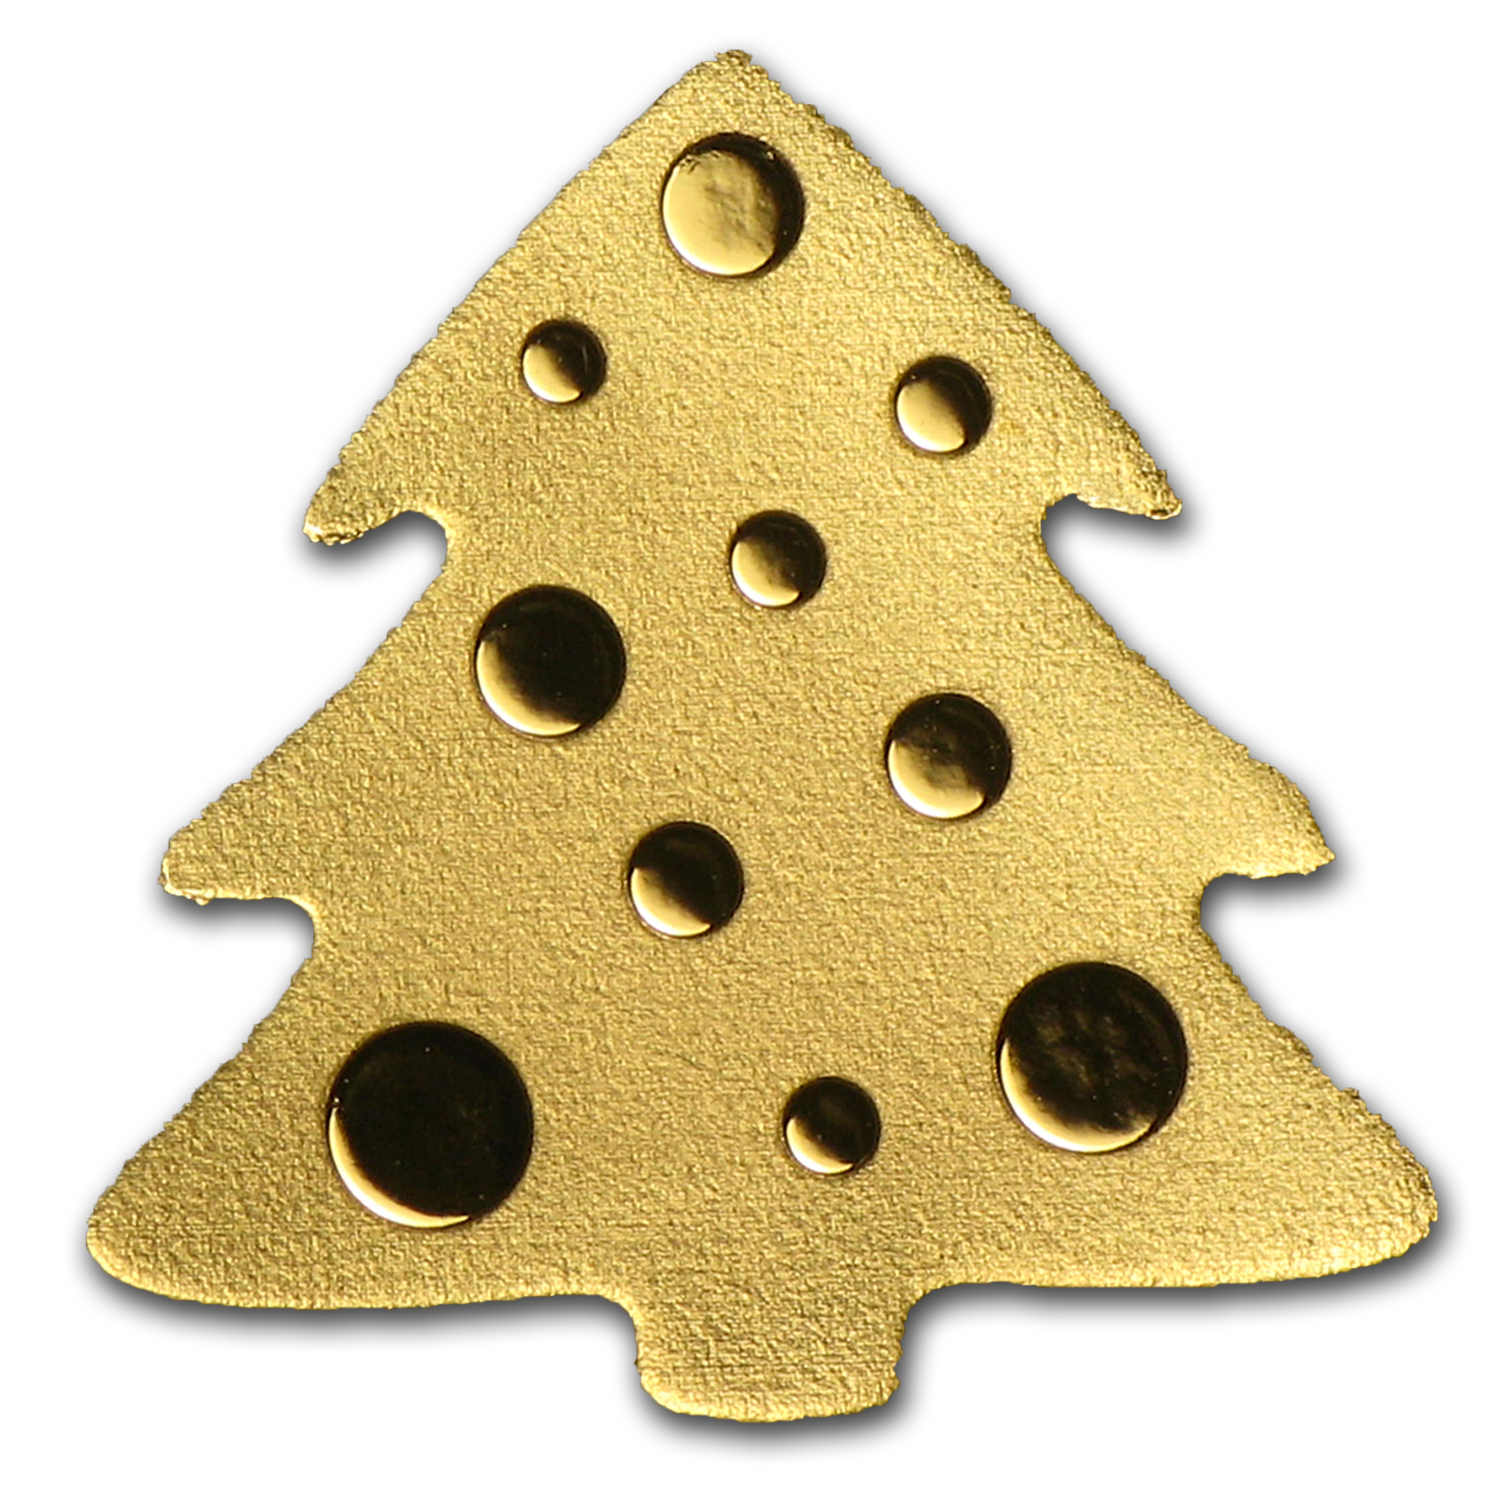 Palau Gold 1/2 gram $1 Golden Christmas Tree Coin